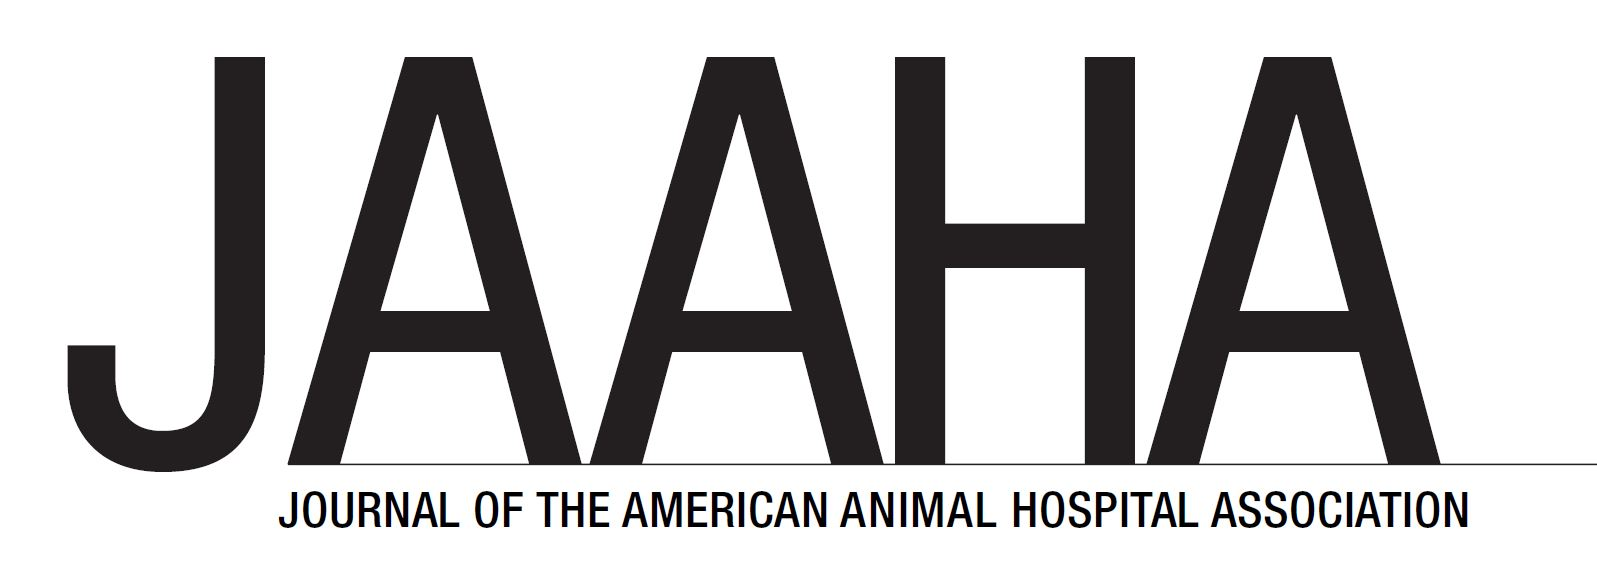 Journal of the American Animal Hospital Association